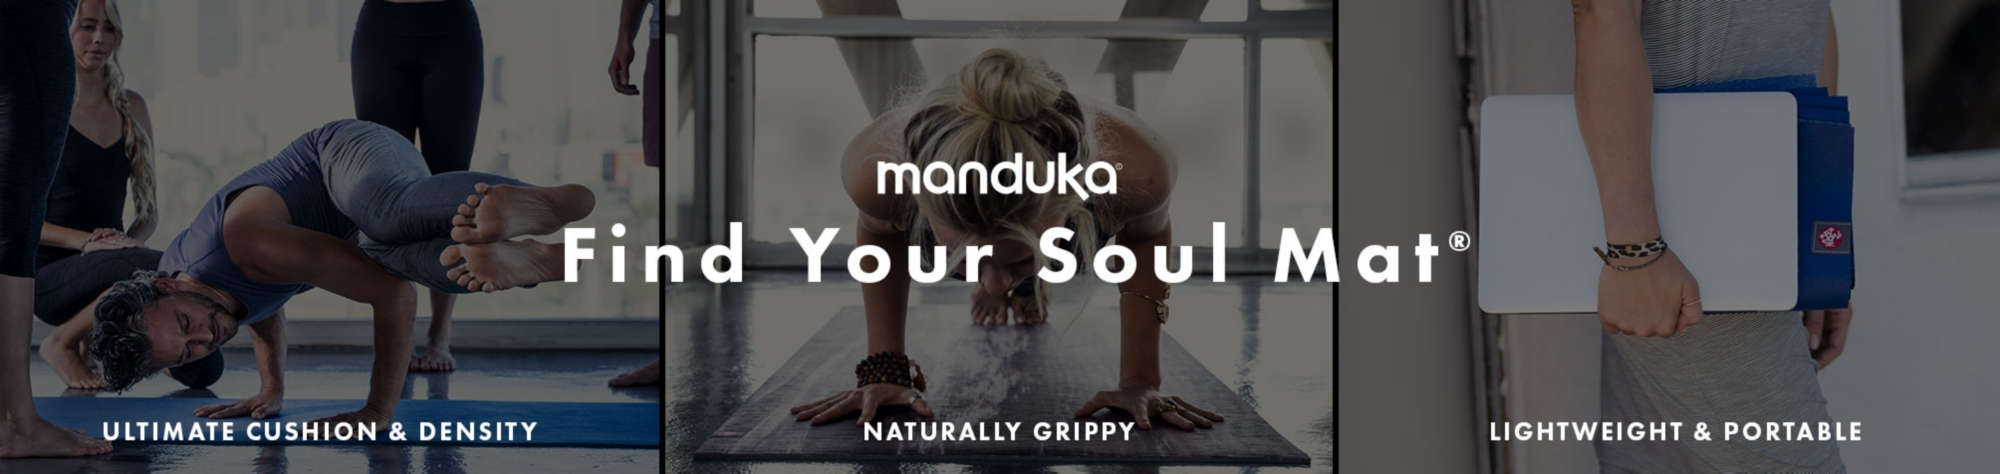 Shop Manduka Yoga Gear